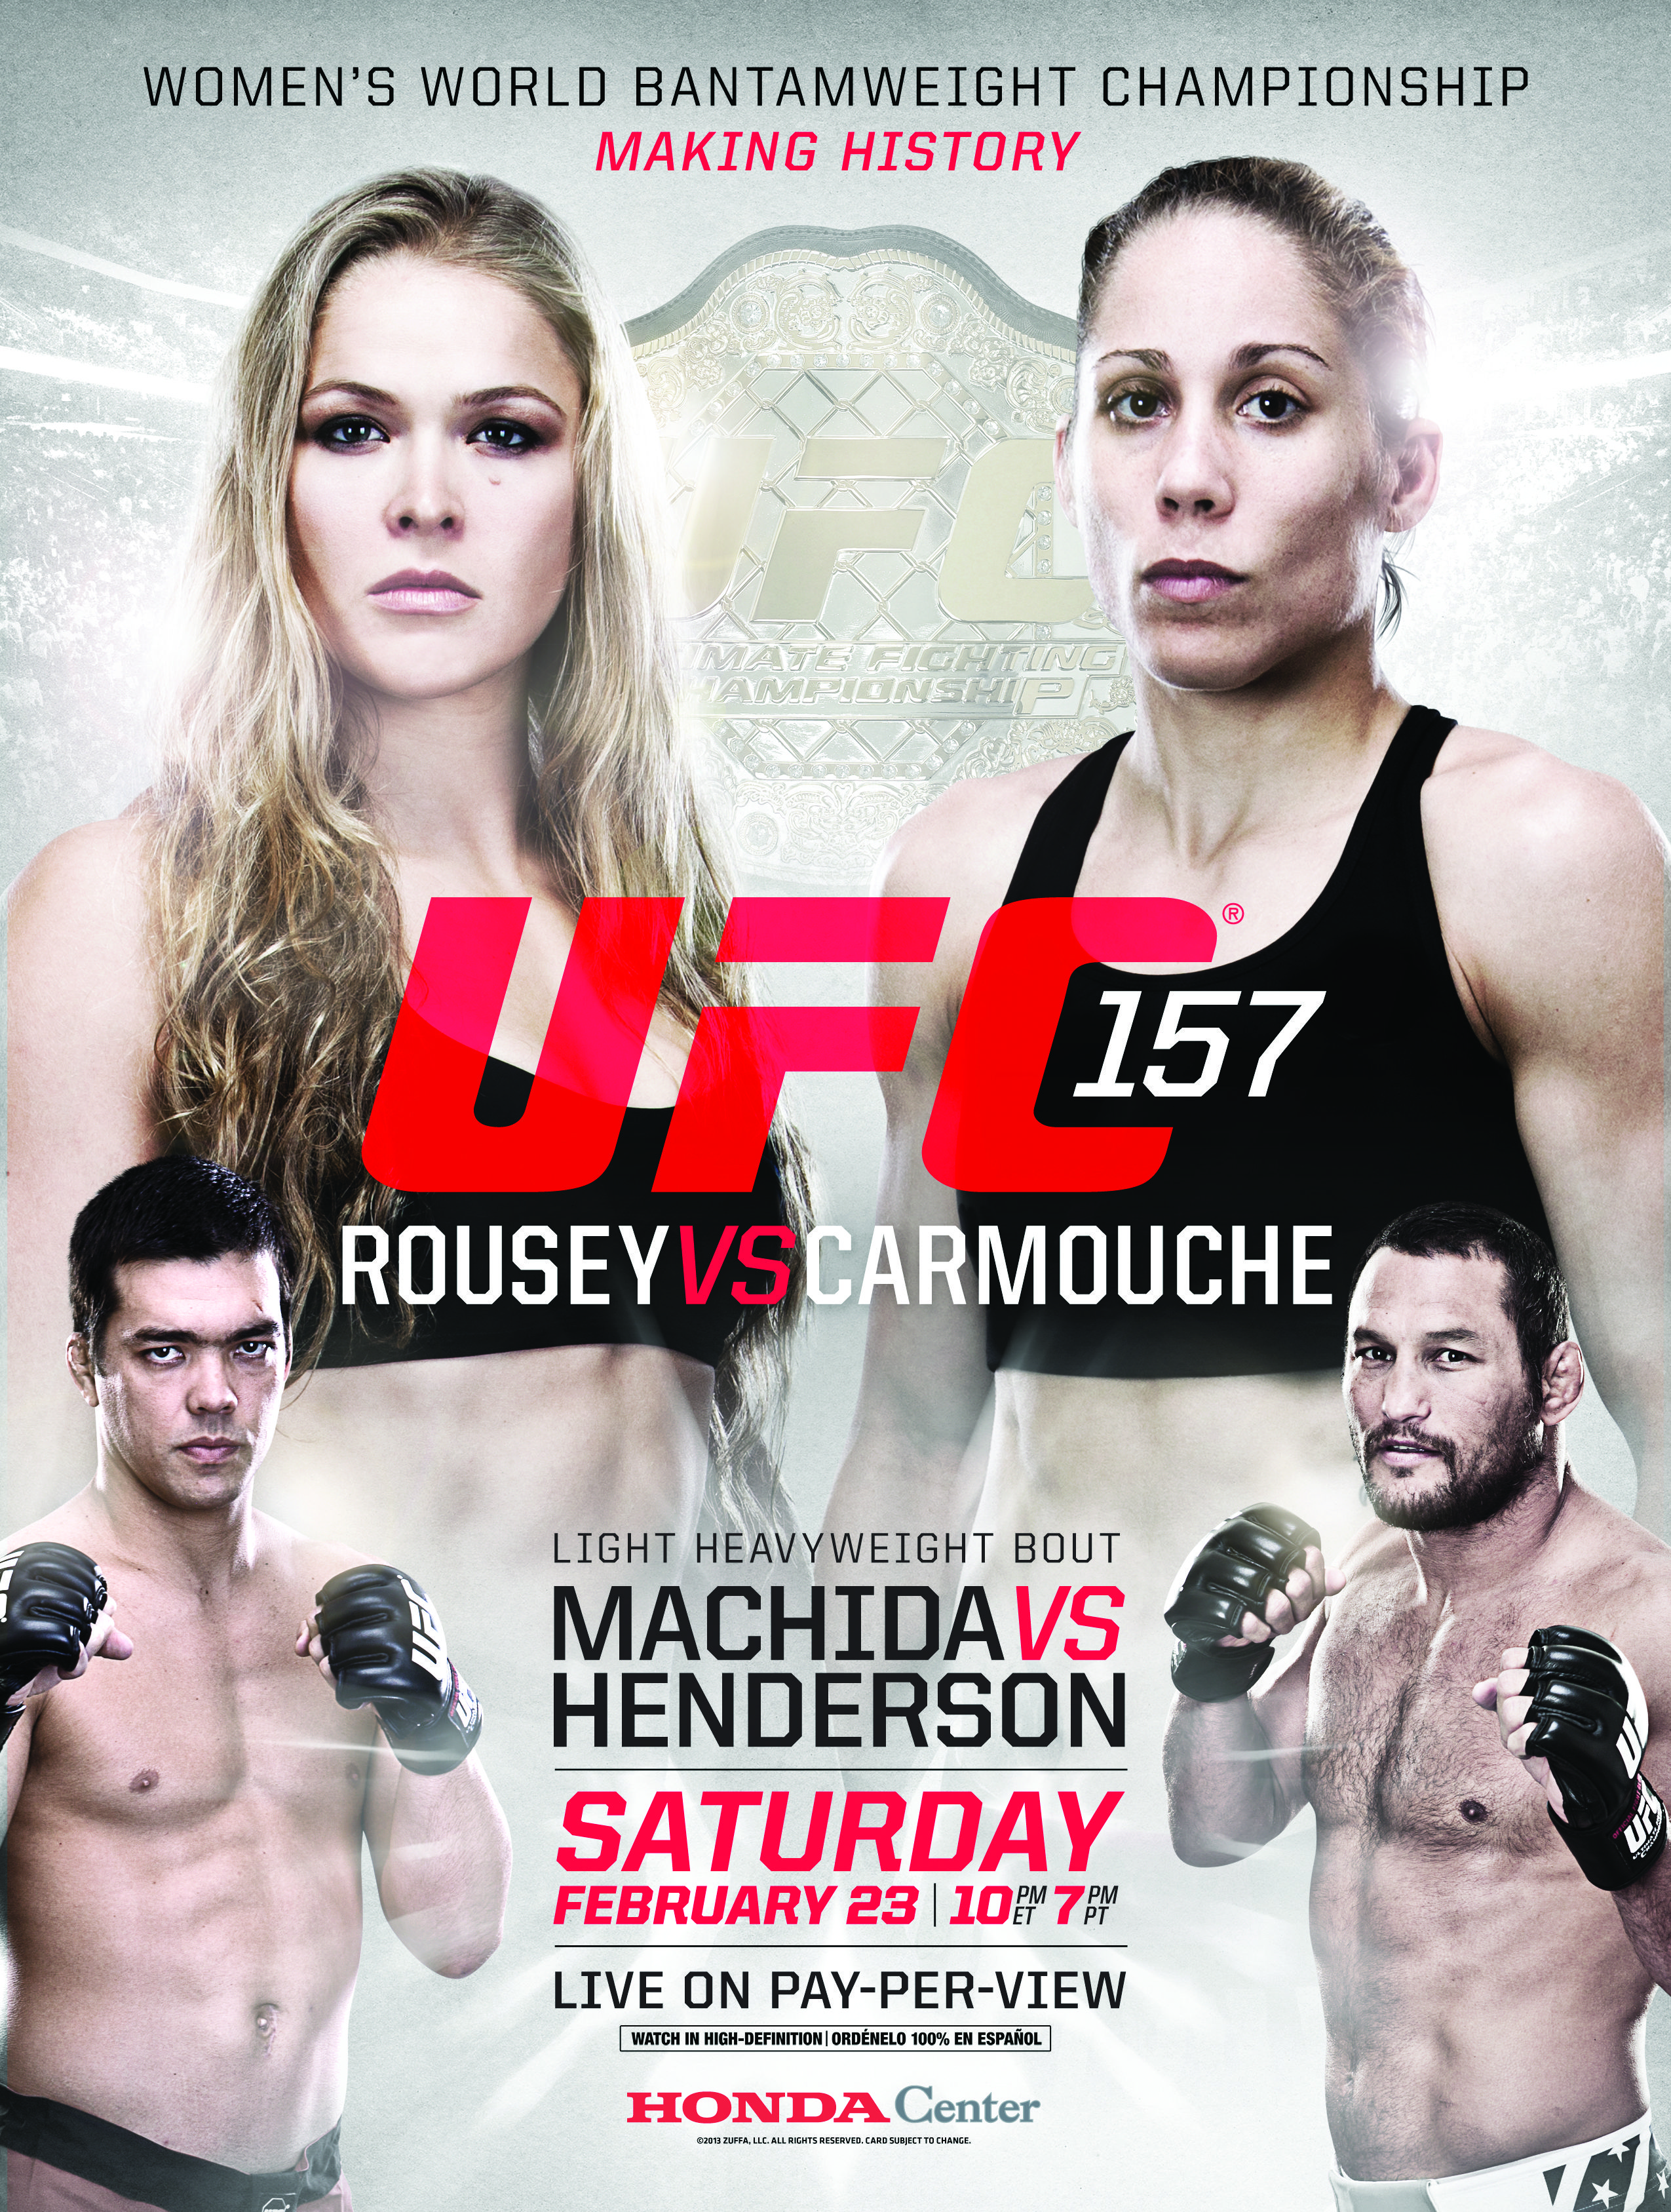 Ufc 157 Rousey Vs Carmouche Saturday February 23rd Live On Pay Per View From Honda Center In Anaheim Ca Ufc Ronda Rousey Ufc Events